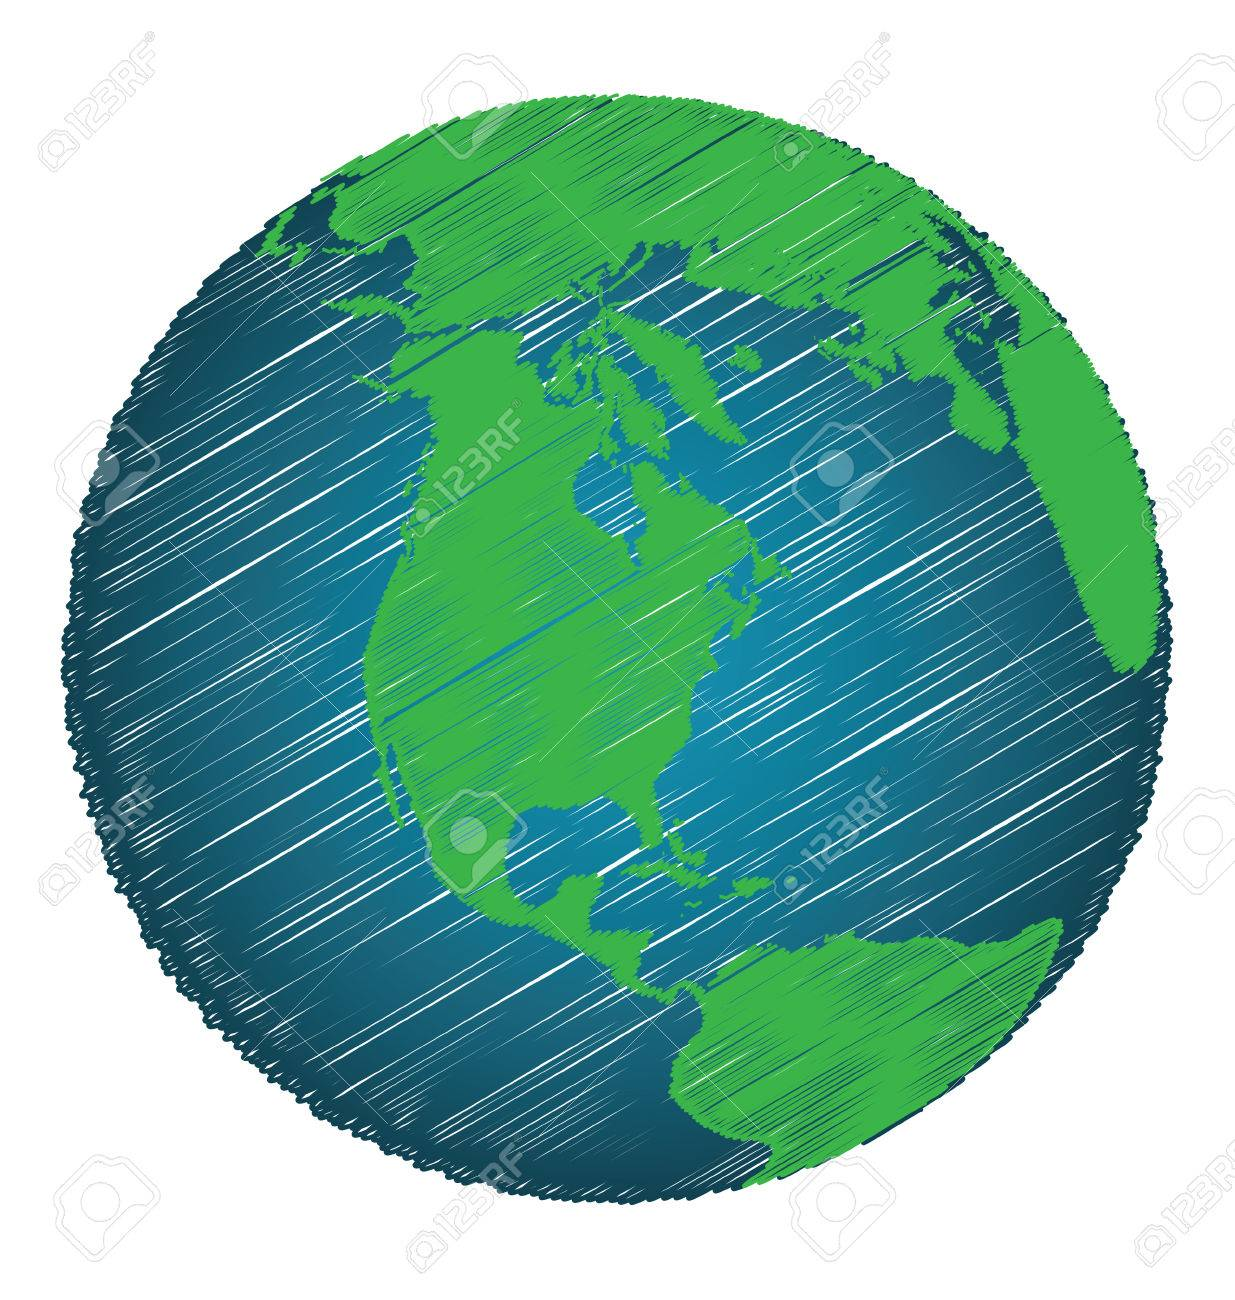 Earth sketch hand draw focus north america continent credit earth sketch hand draw focus north america continent credit world map of nasa stock vector gumiabroncs